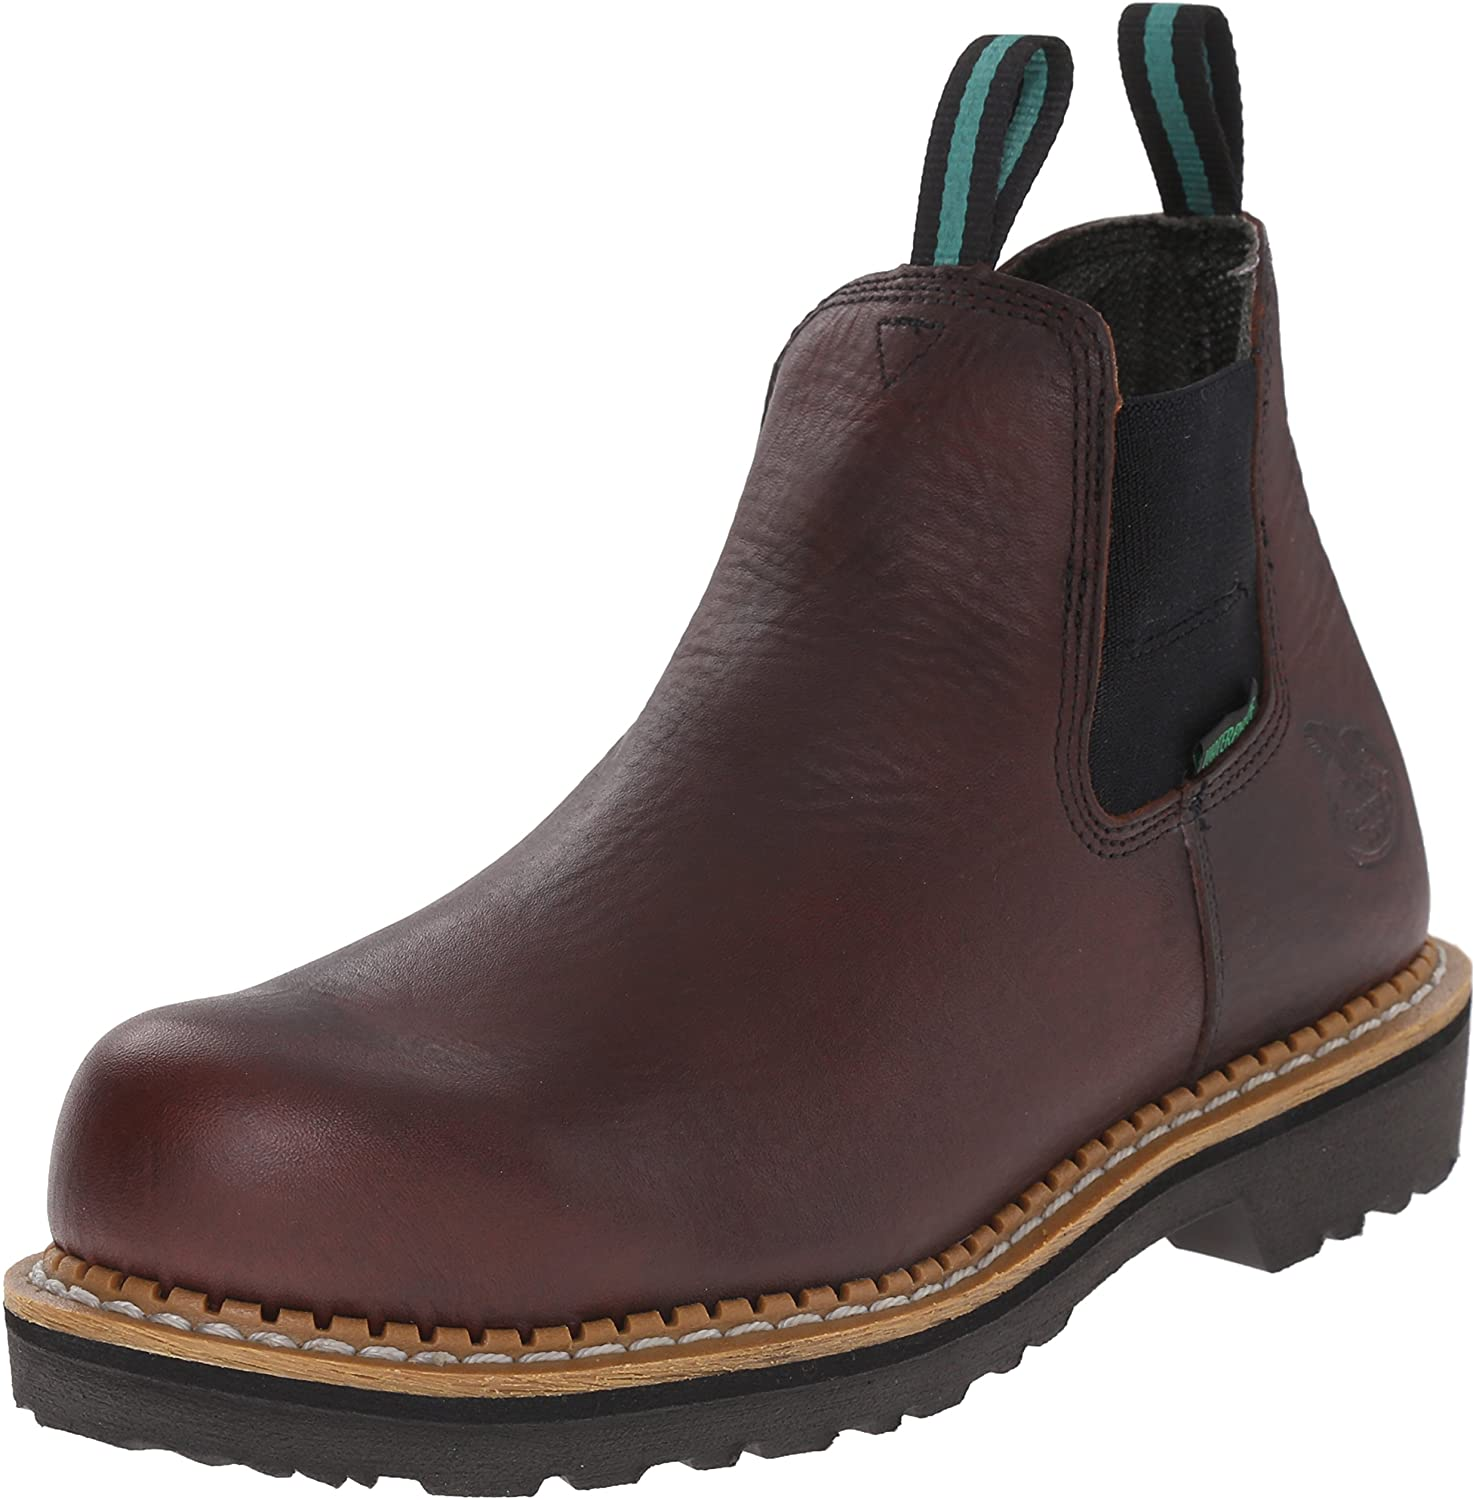 Georgia Boot Men's Giant Romeo Meel Toe Work, Soggy Brown, 9 M US